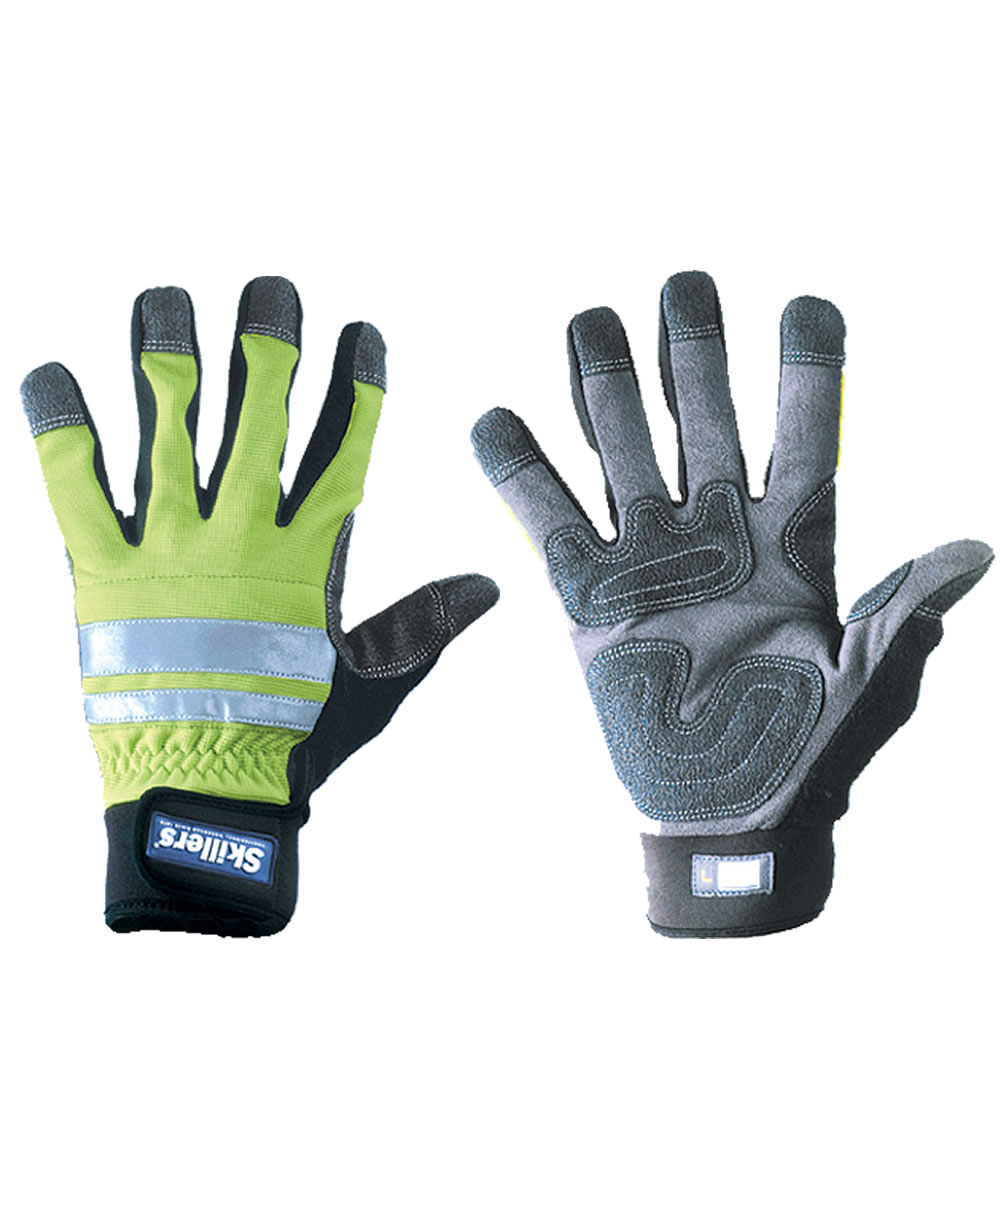 Skillers High Visibility Gloves